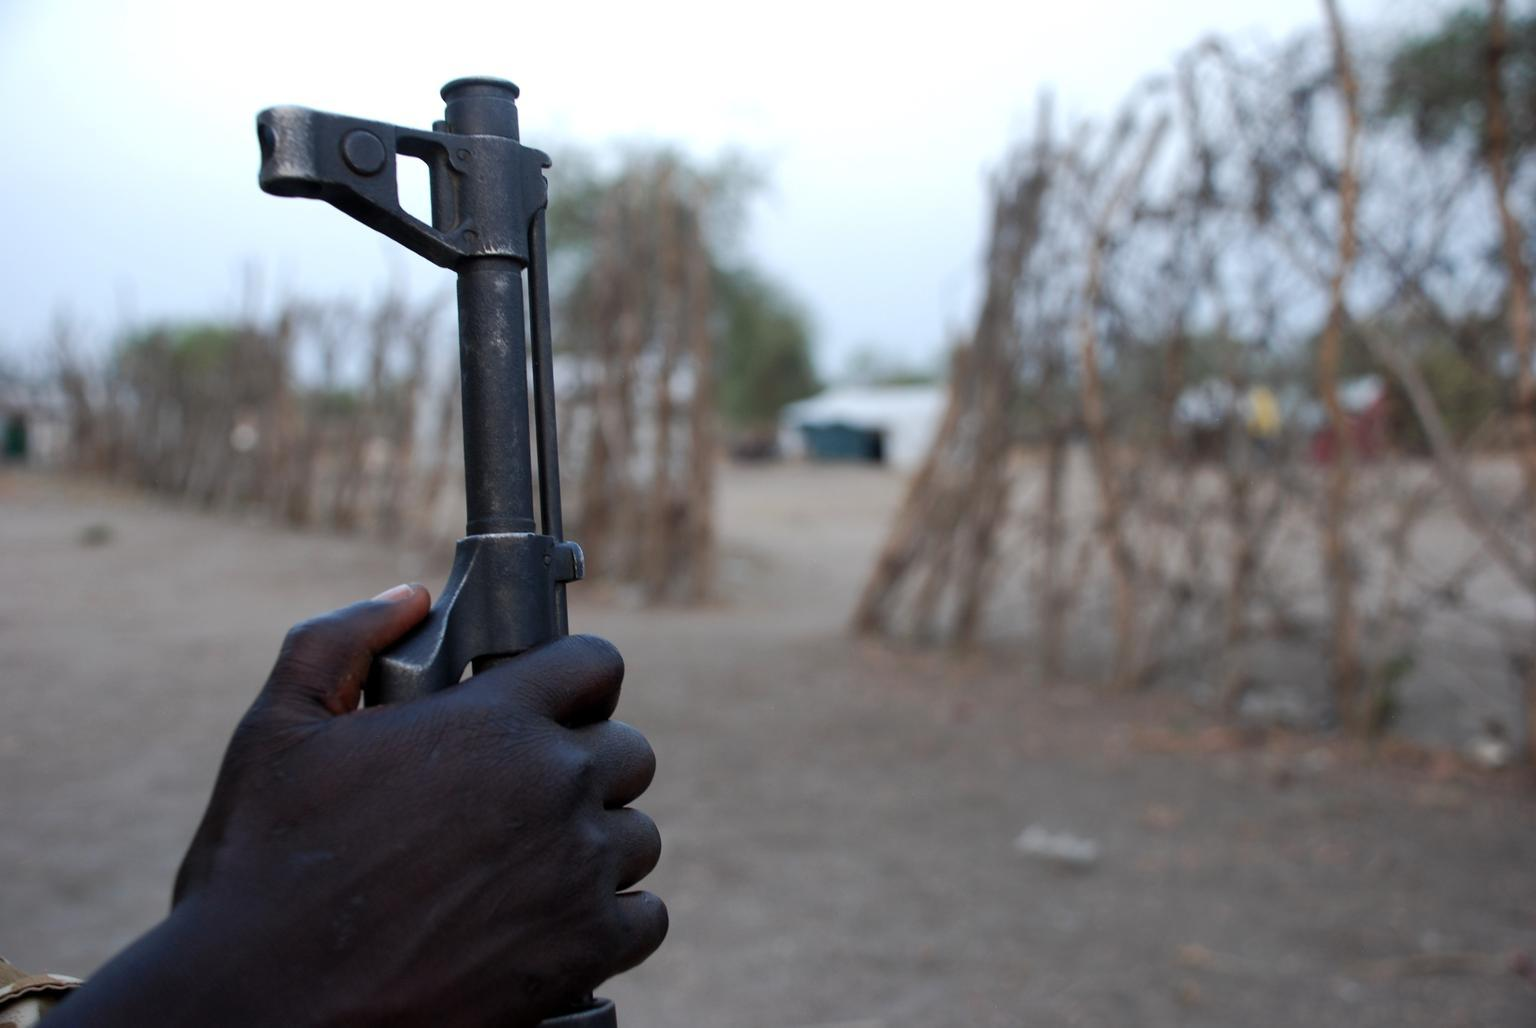 Some 12,000 children are estimated to be in the ranks of various armed groups in South Sudan